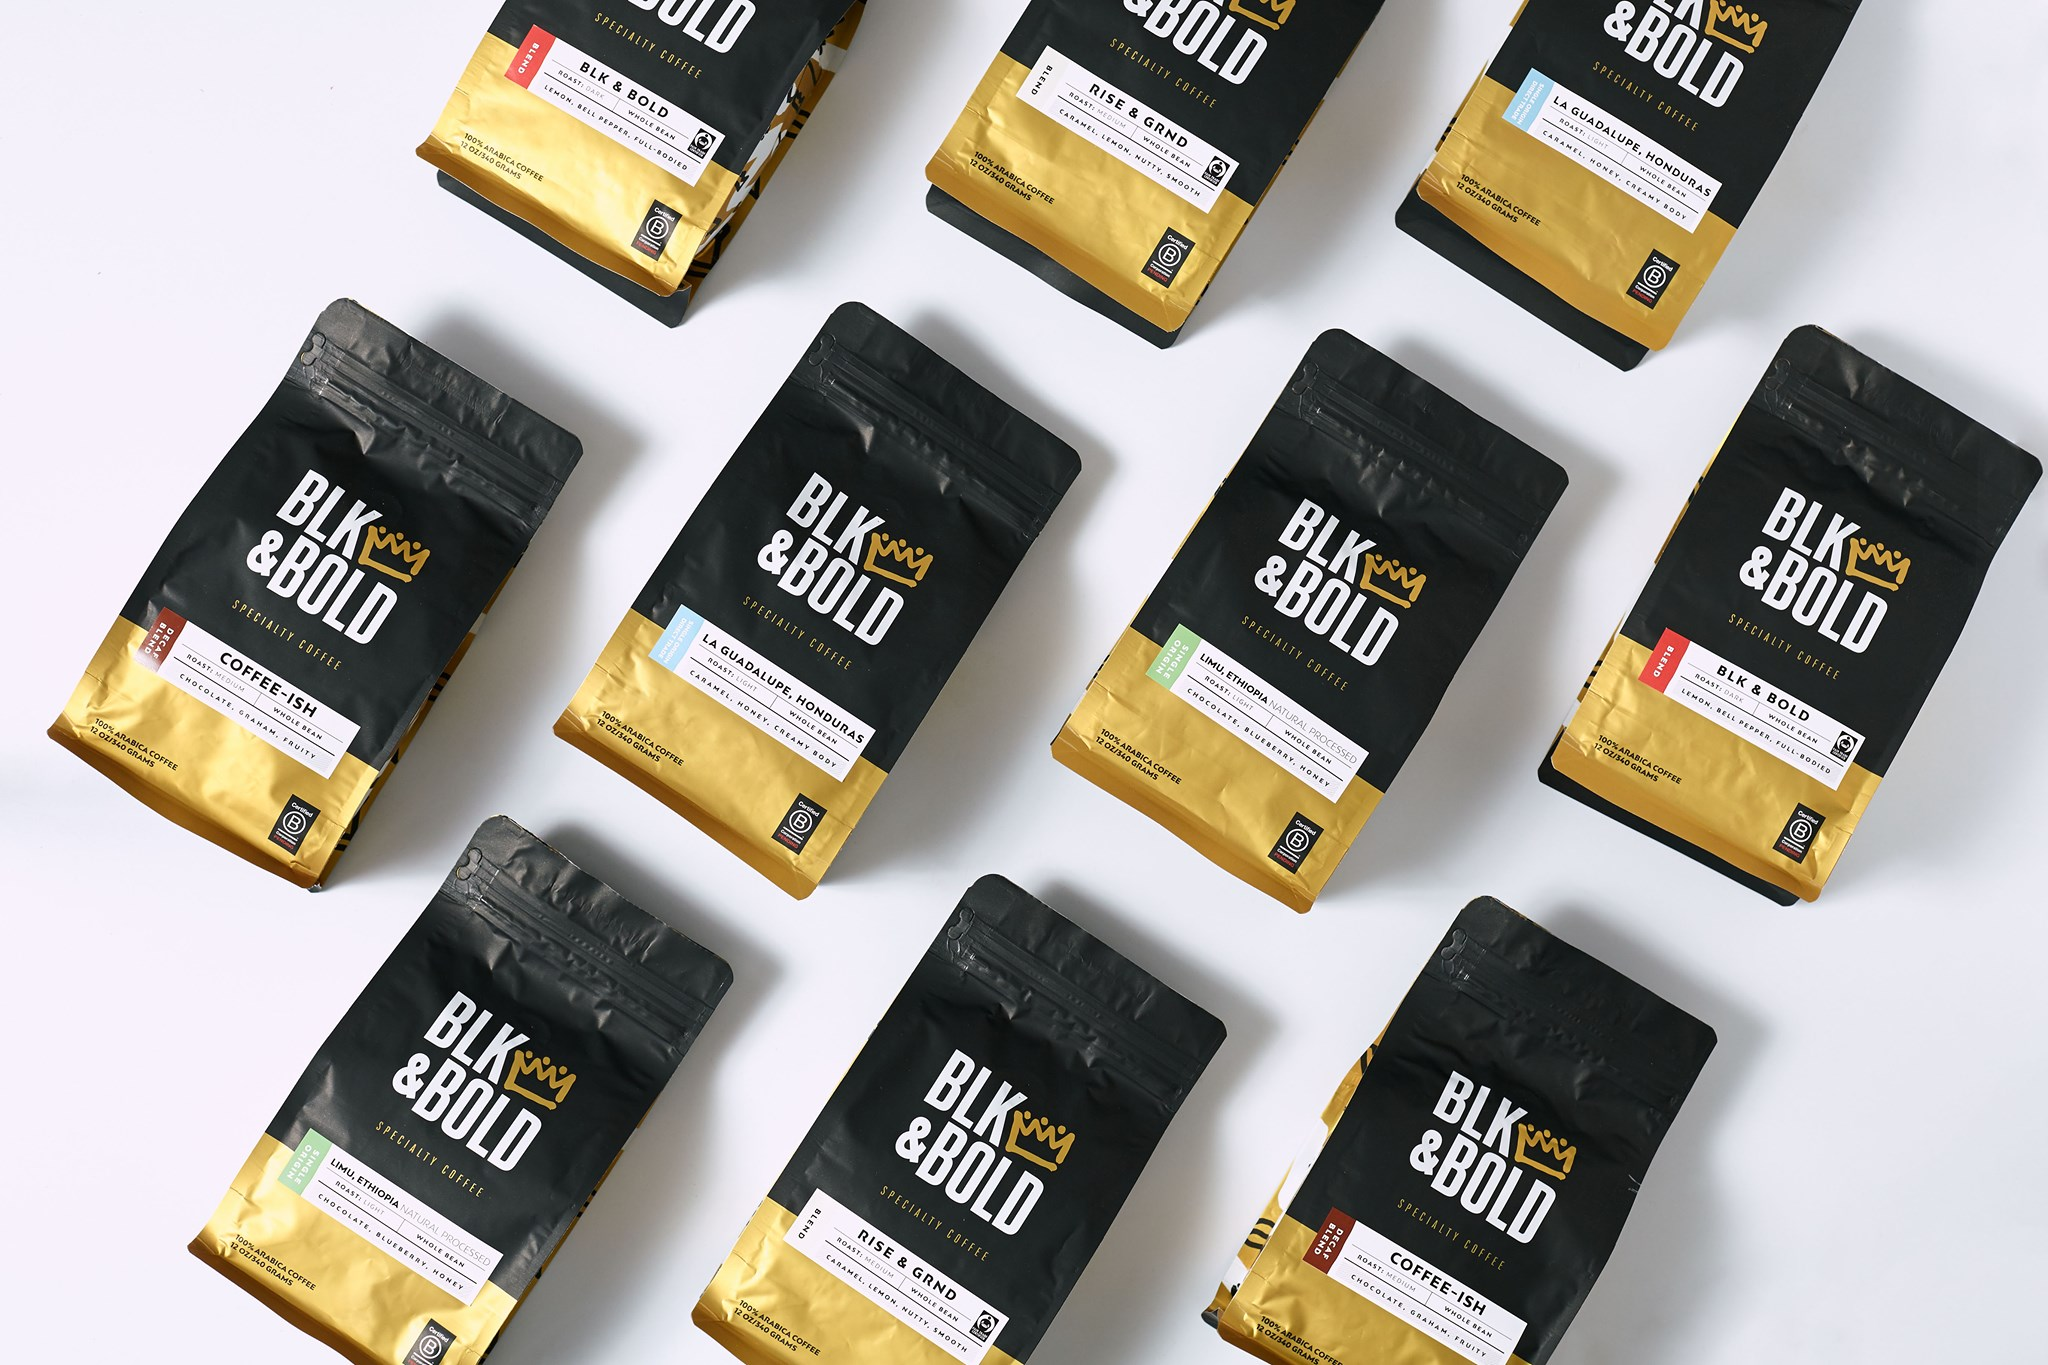 BLK and Bold (Coffee and Tea)